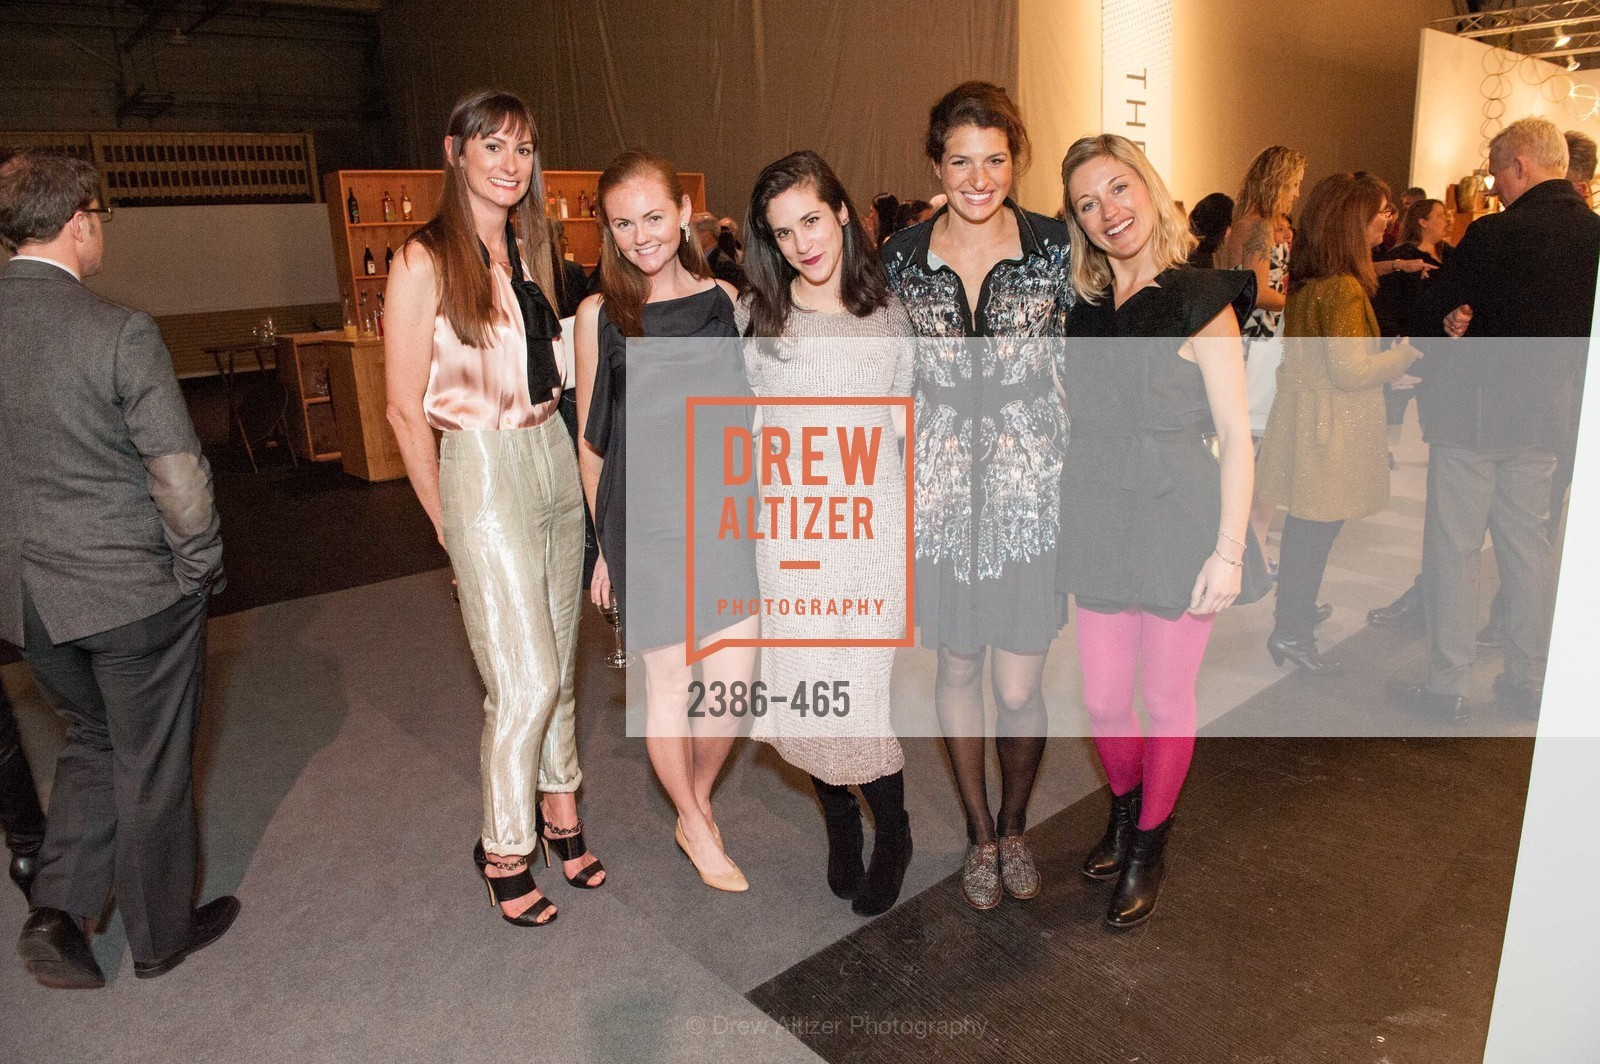 Evie Howell, Katie Spalding, Tessa Perliss, Lexie Fisher, FOG Design + Art Preview Gala, US. US, January 16th, 2014,Drew Altizer, Drew Altizer Photography, full-service agency, private events, San Francisco photographer, photographer california